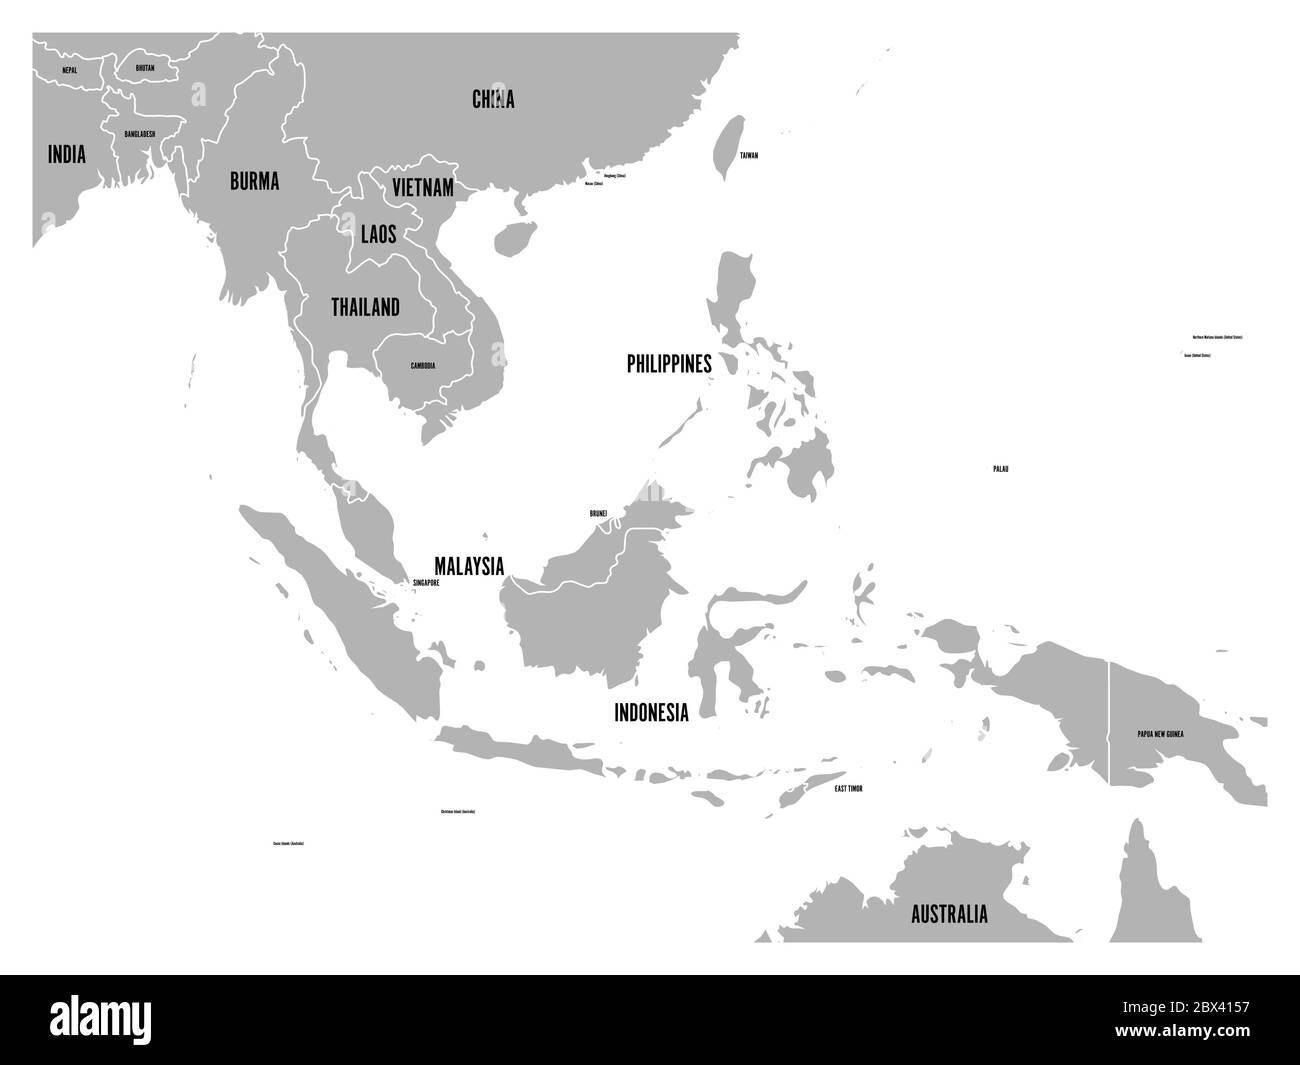 Picture of: South East Asia Political Map Grey Land On White Background With Black Country Name Labels Simple Flat Vector Illustration Stock Vector Image Art Alamy